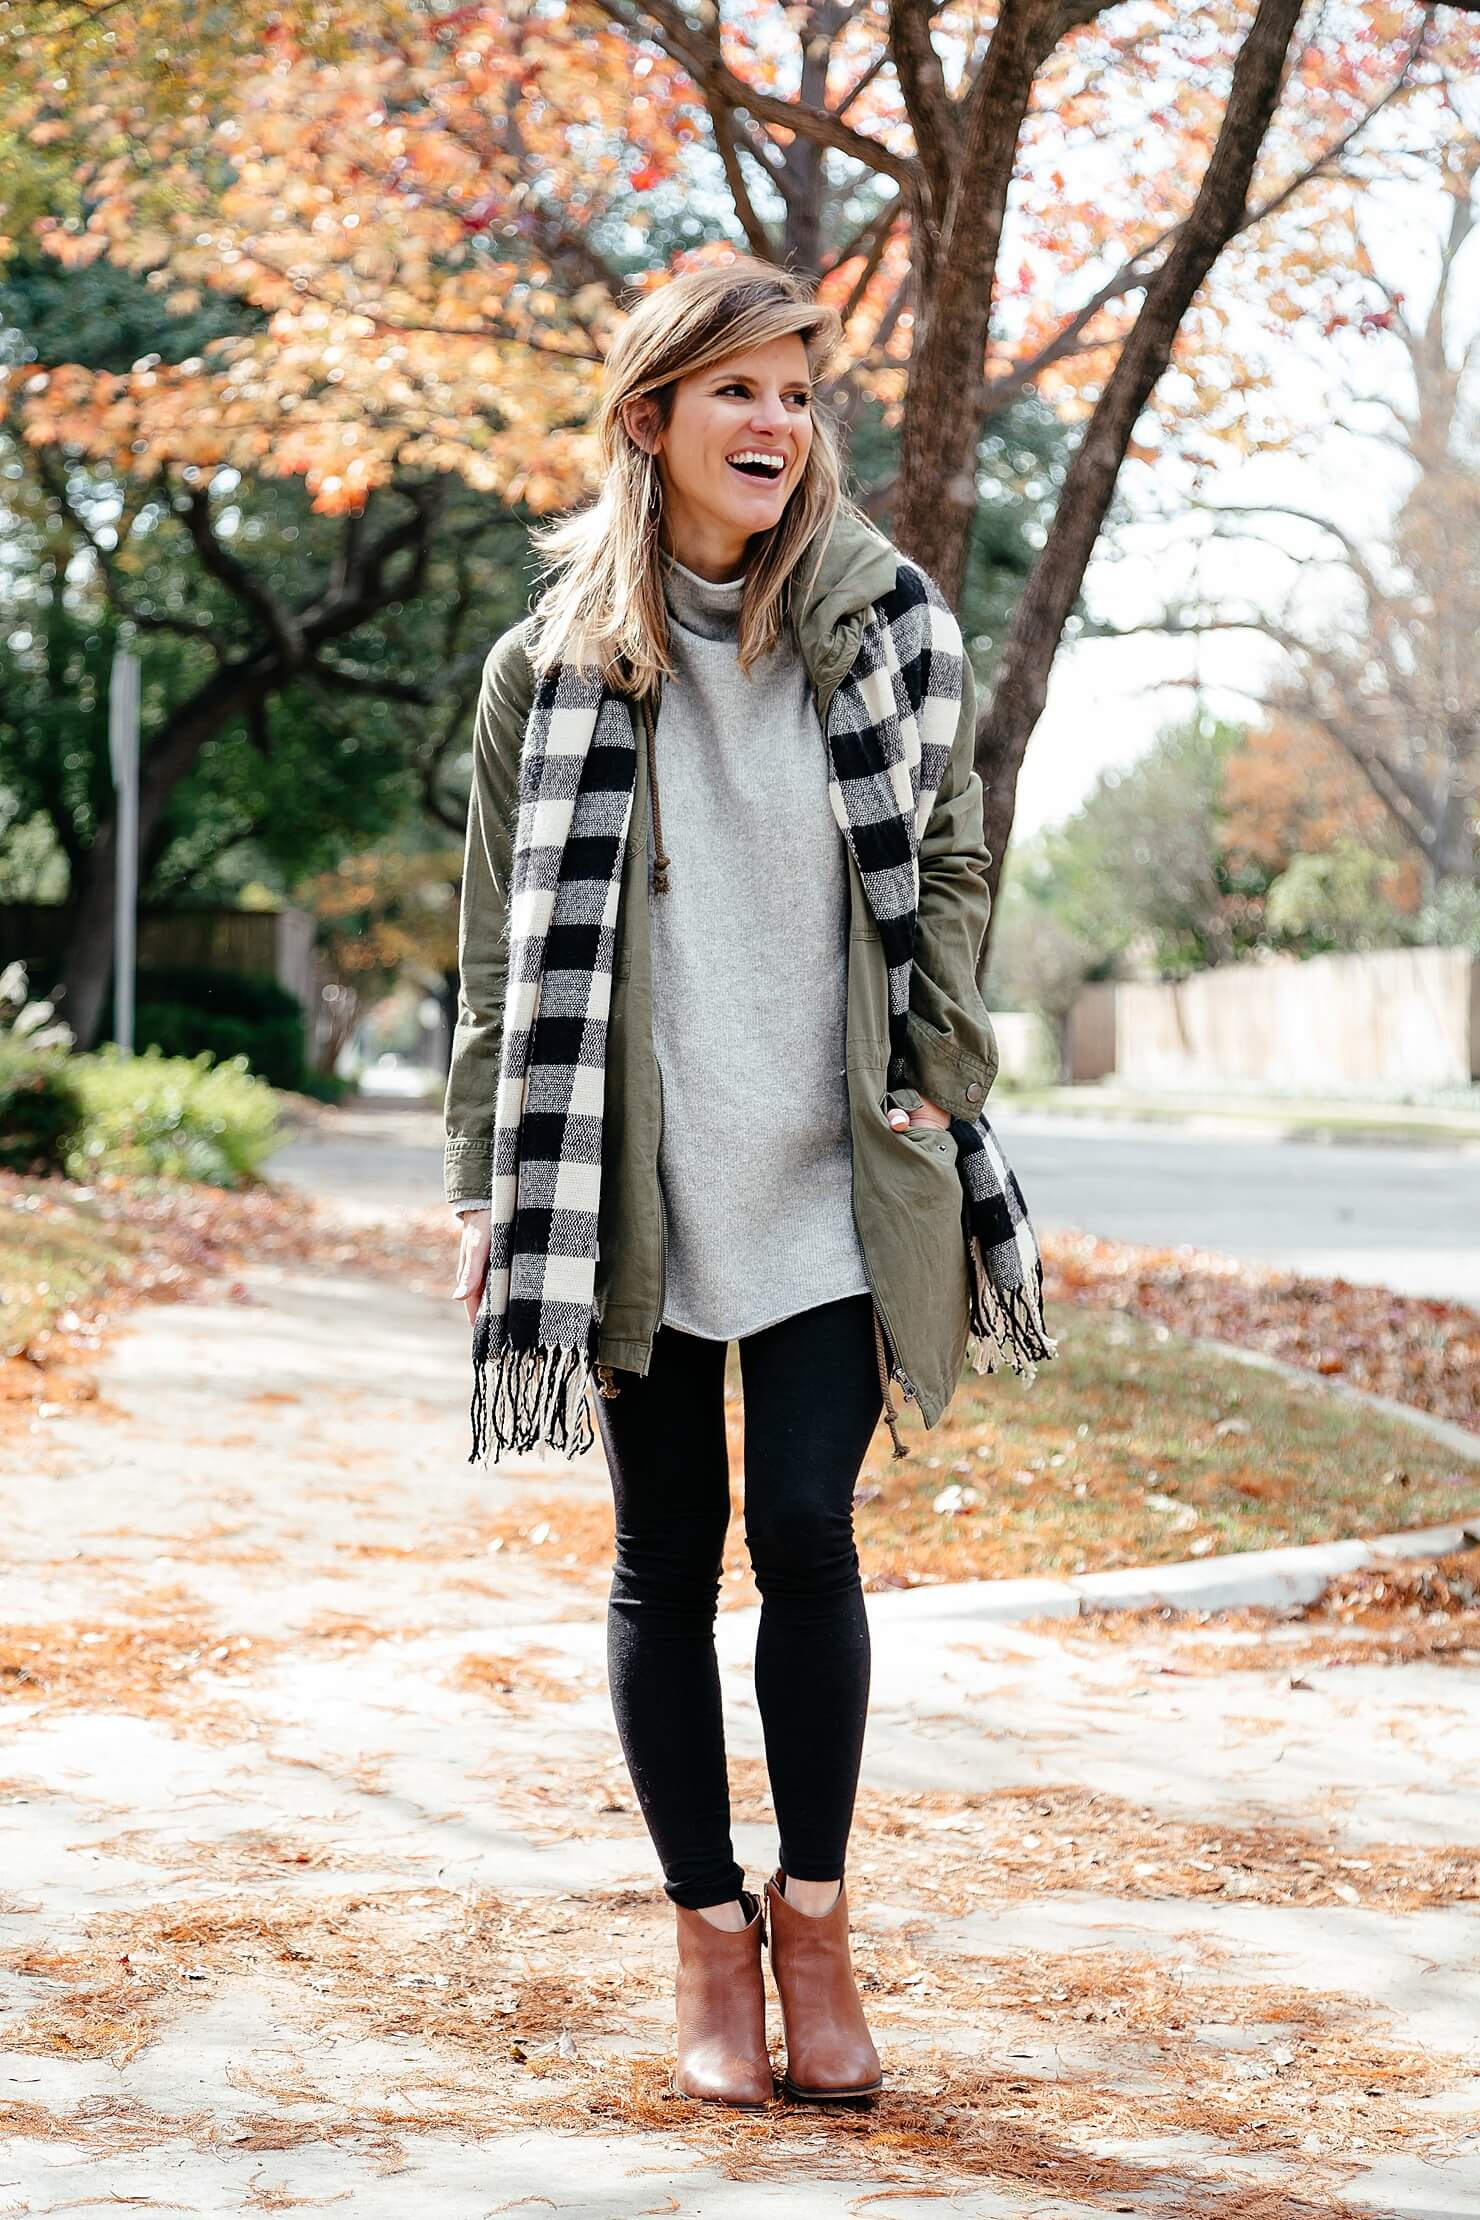 What To Wear With Leggings + 7 Style Tips on How To Wear